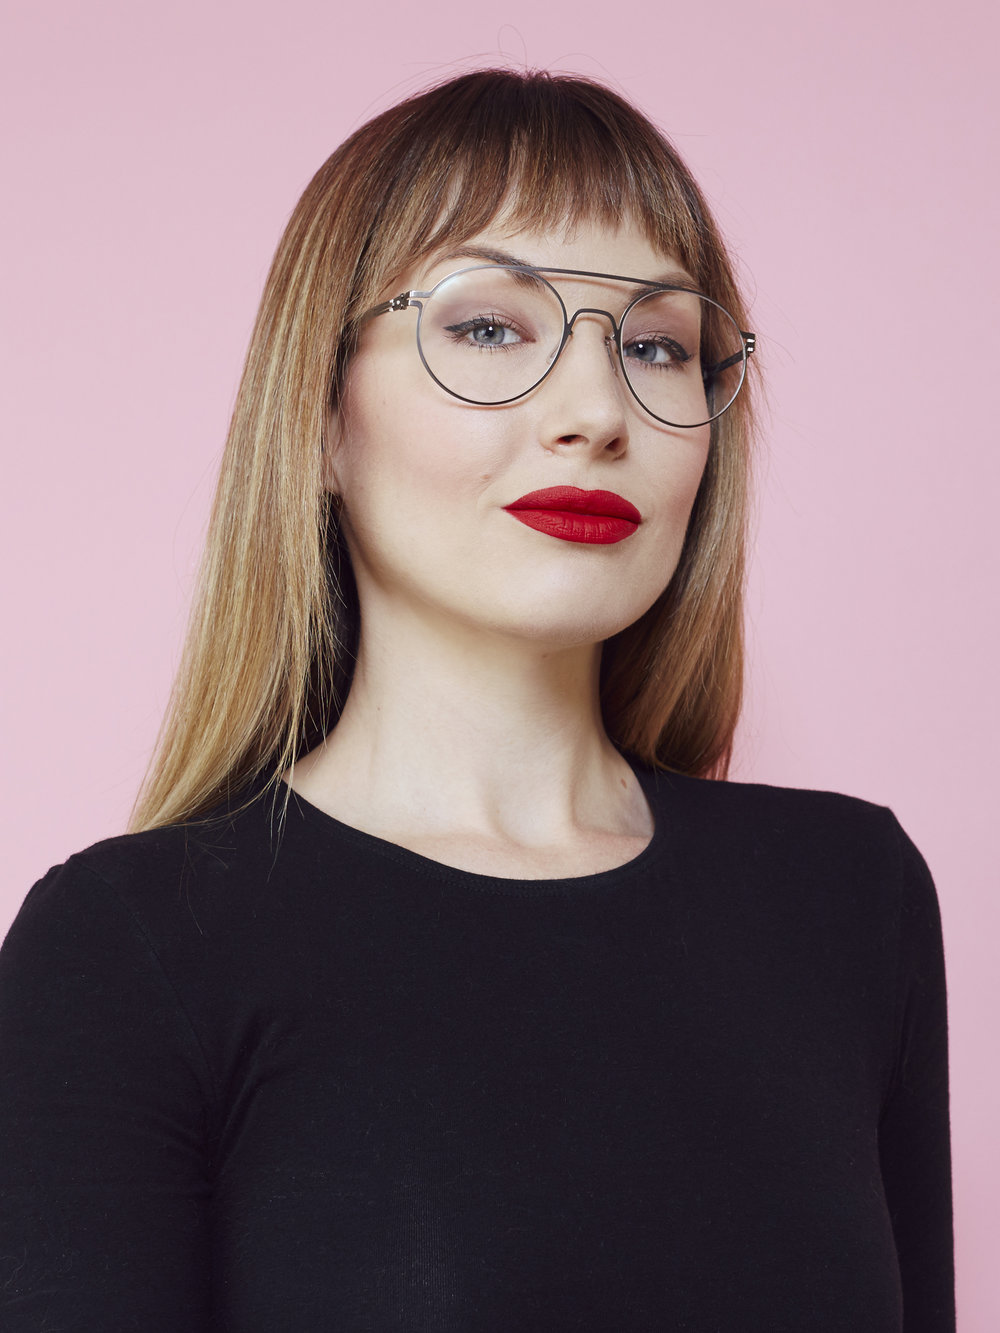 Woman with bangs, glasses and red lipstick in black shirt posing in front of pink background